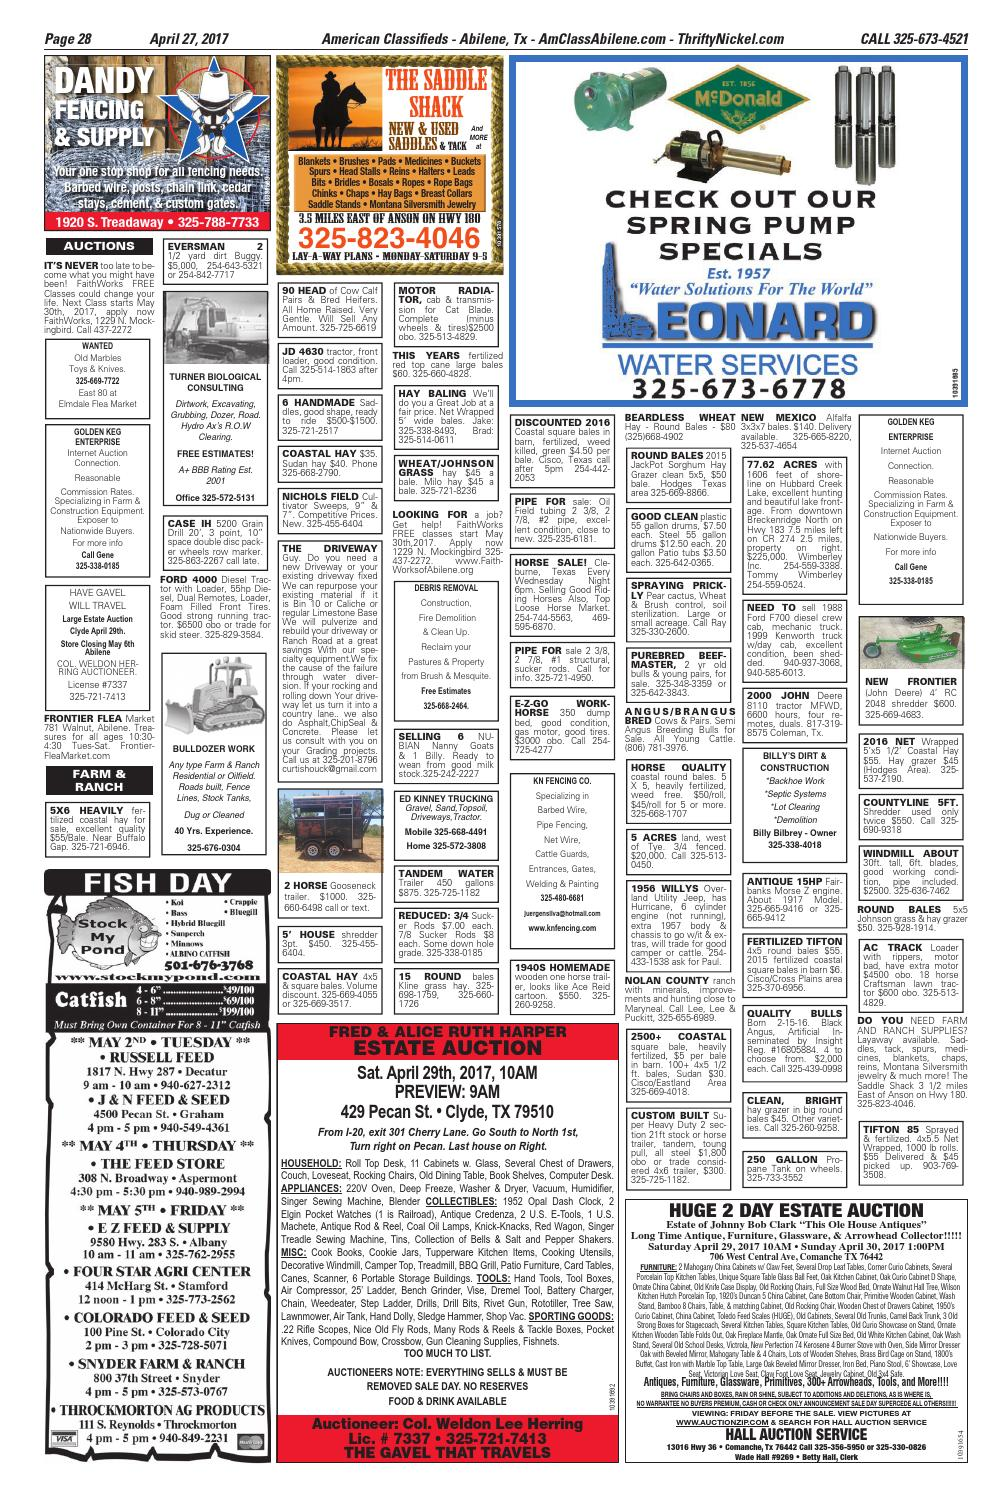 American Classifieds Abilene 04-27-17 by American